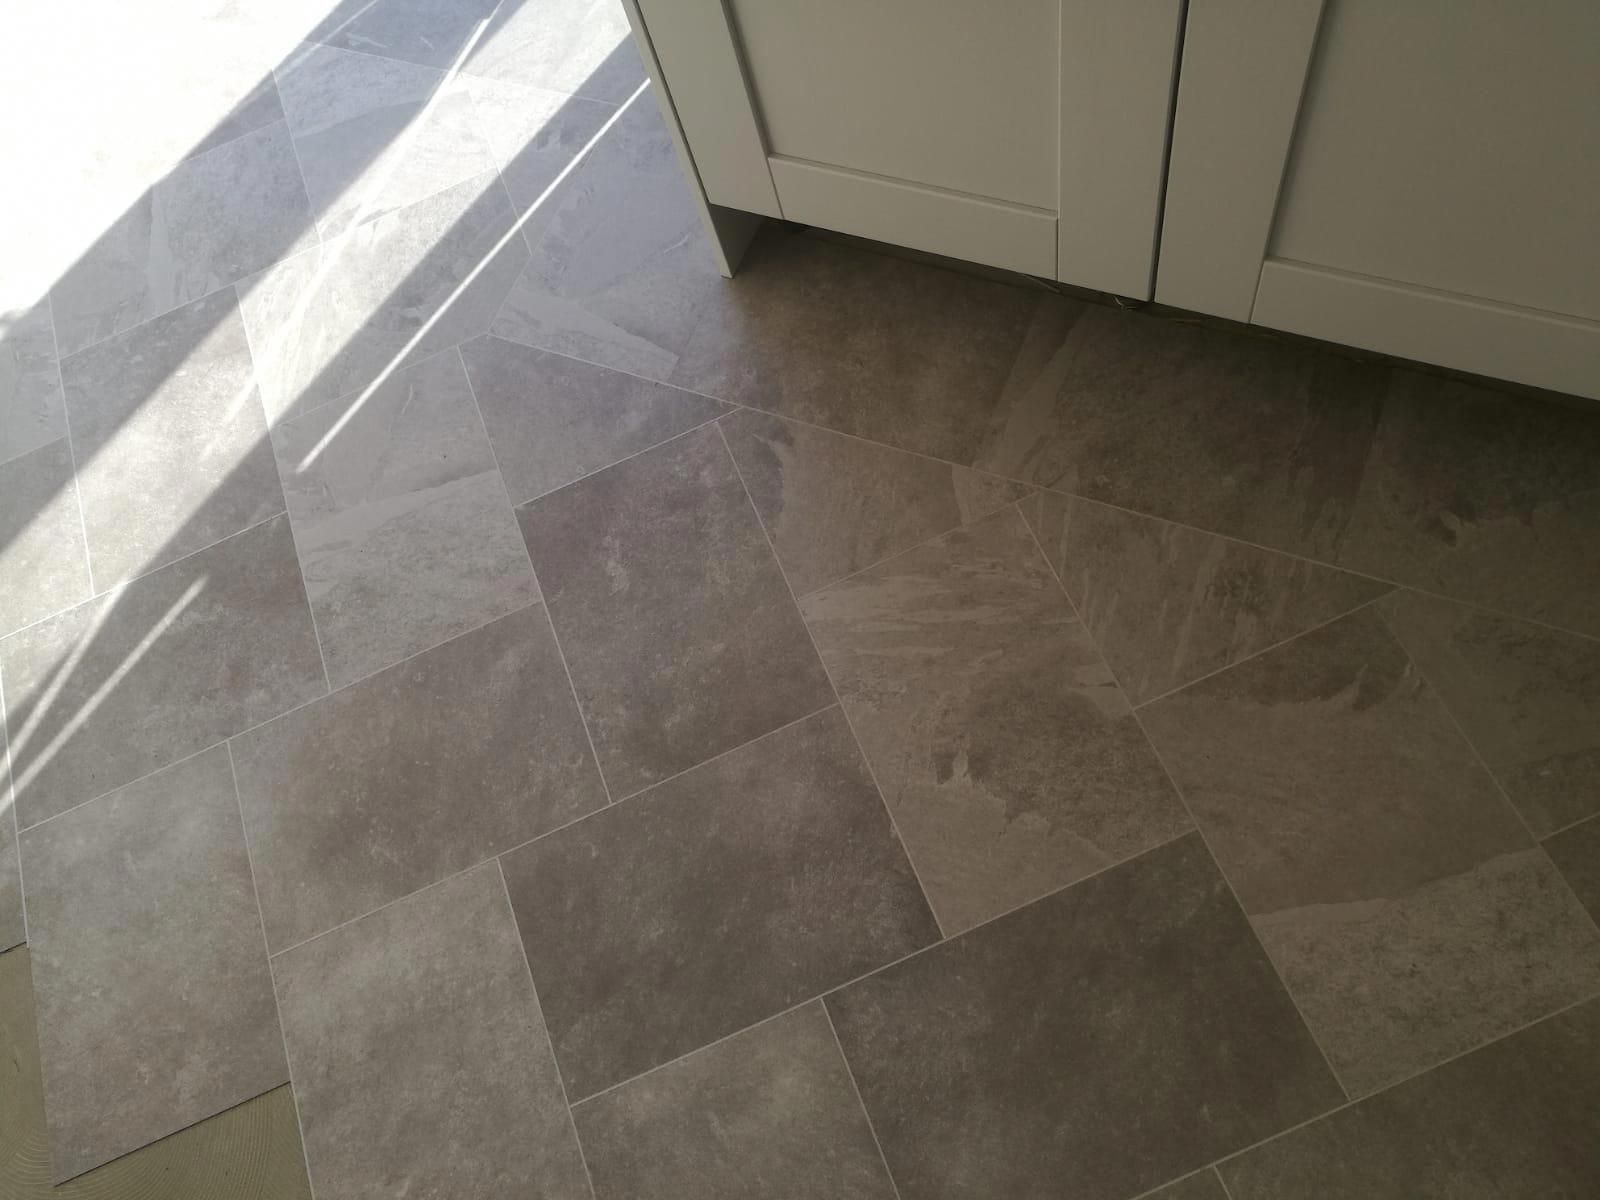 Kitchen Utility Wc Done In Karndean Knight Tile In Grey Riven Slate With Concrete Design Strips Carpets Grey Flooring Grey Floor Tiles Karndean Knight Tile